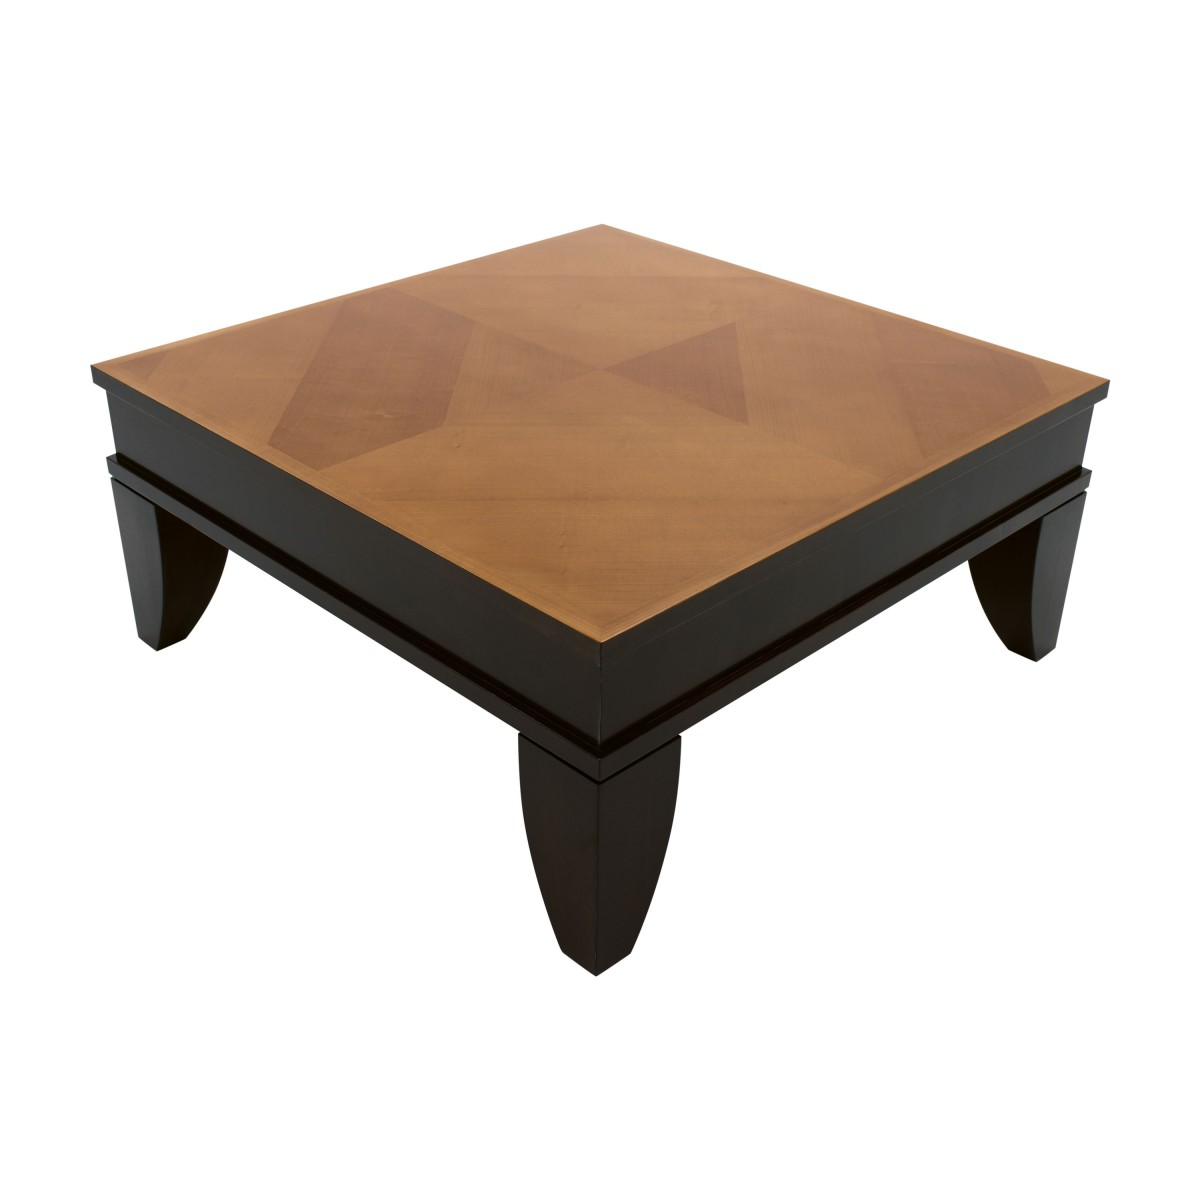 Small table Scacco - Sevensedie